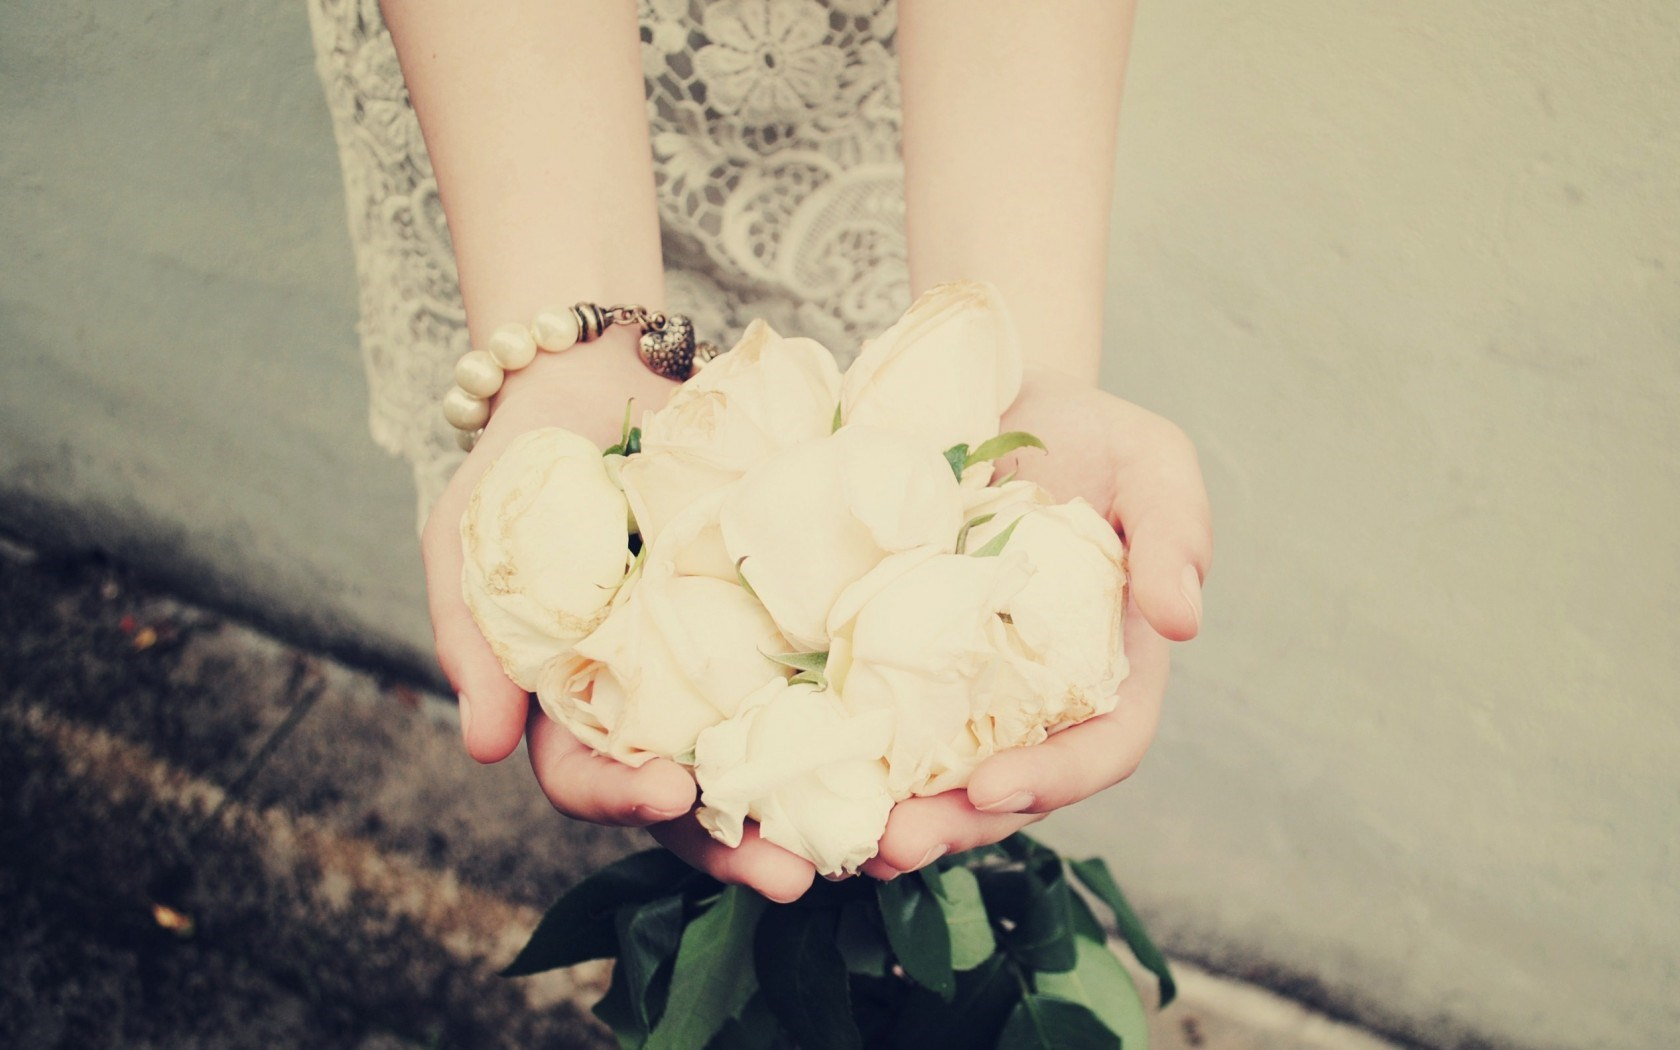 Hands Roses White Bracelet Girl